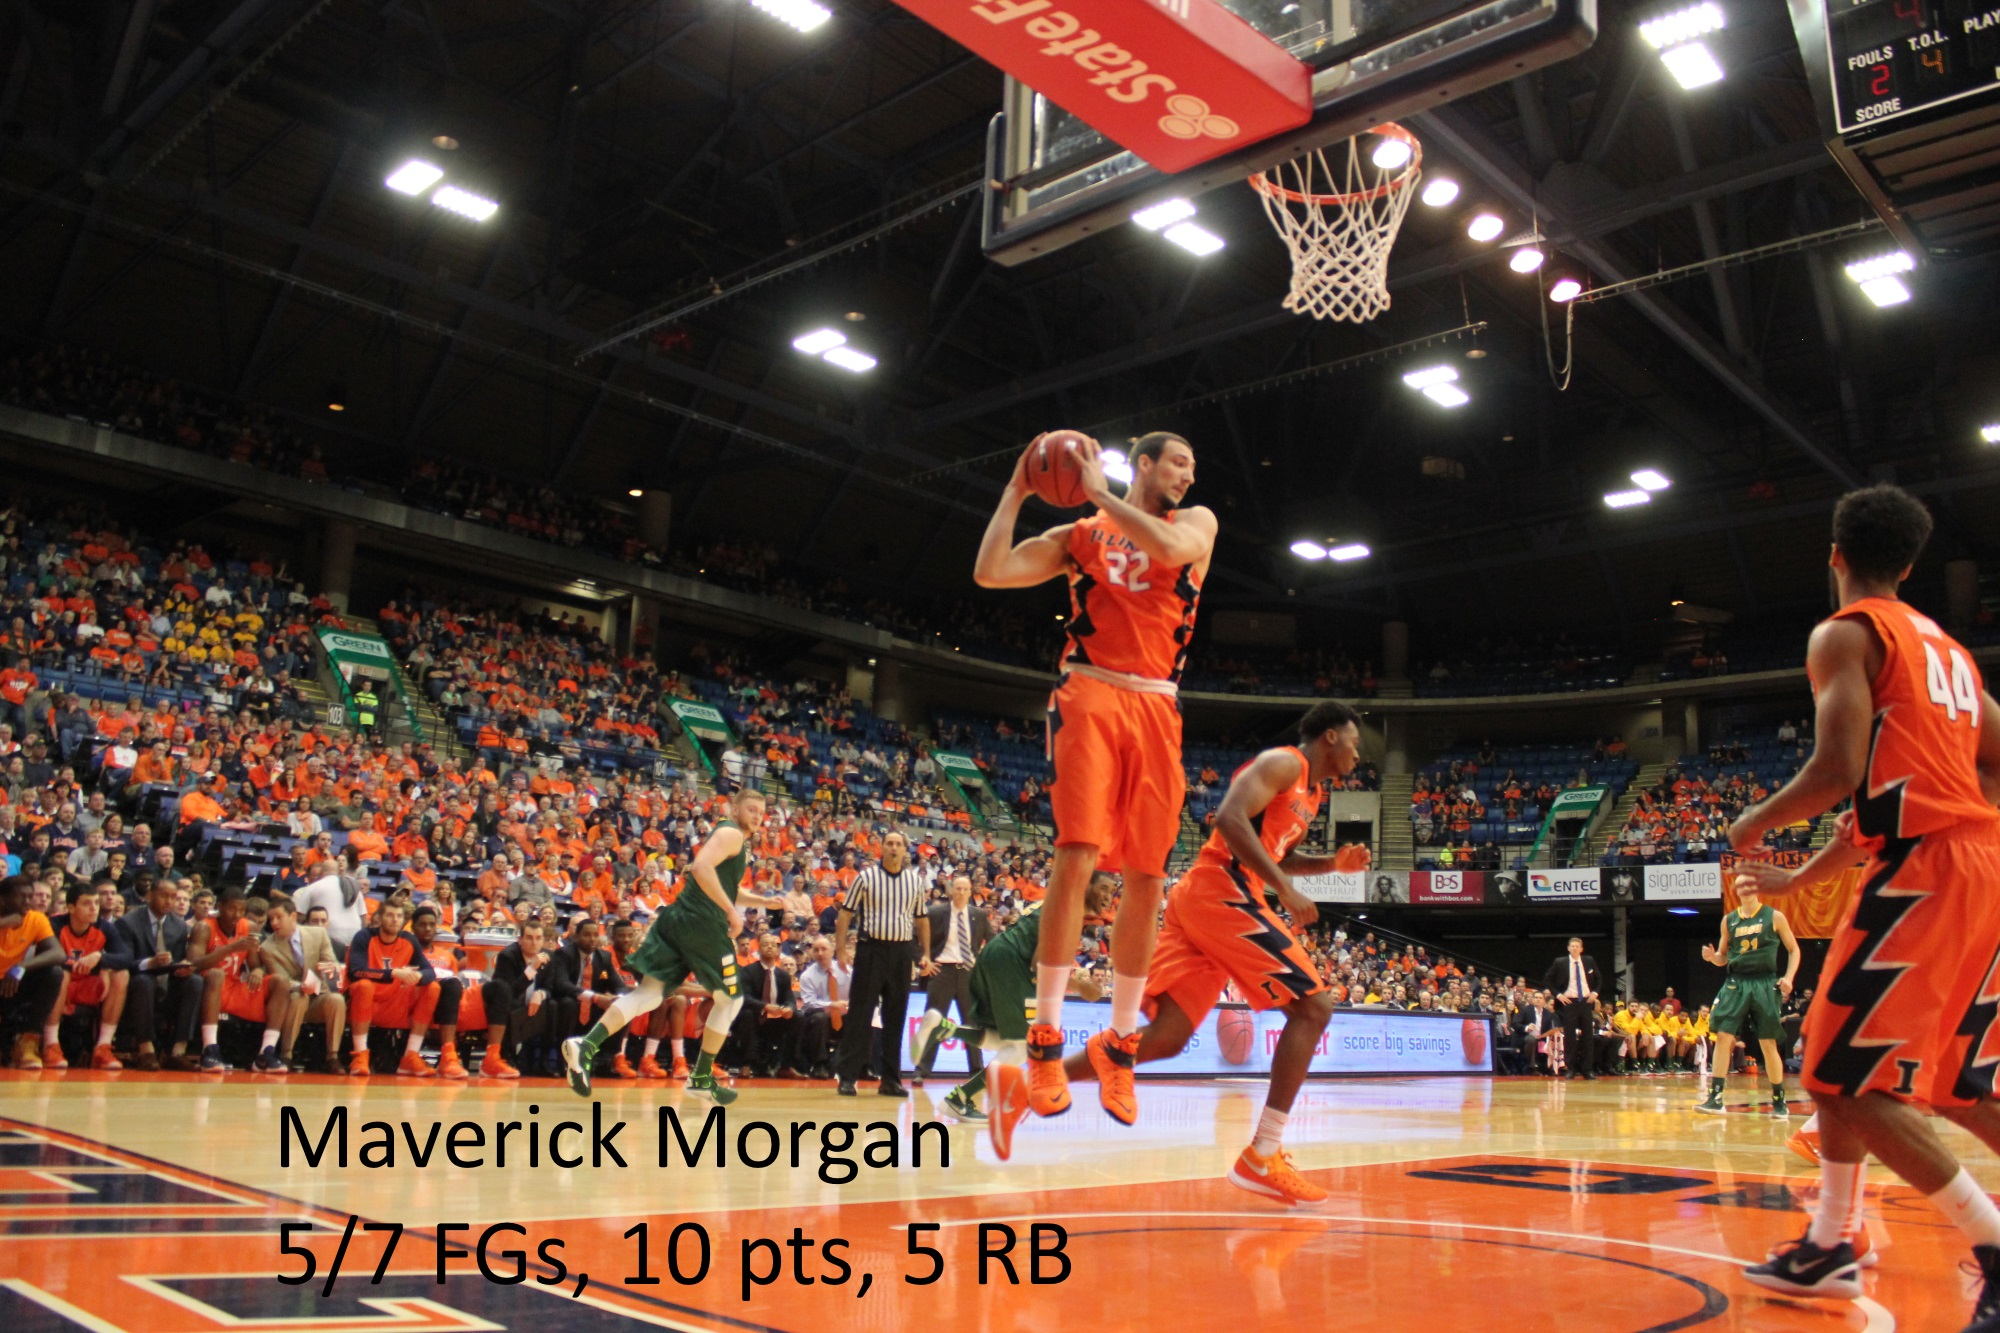 Maverick Morgan stat line